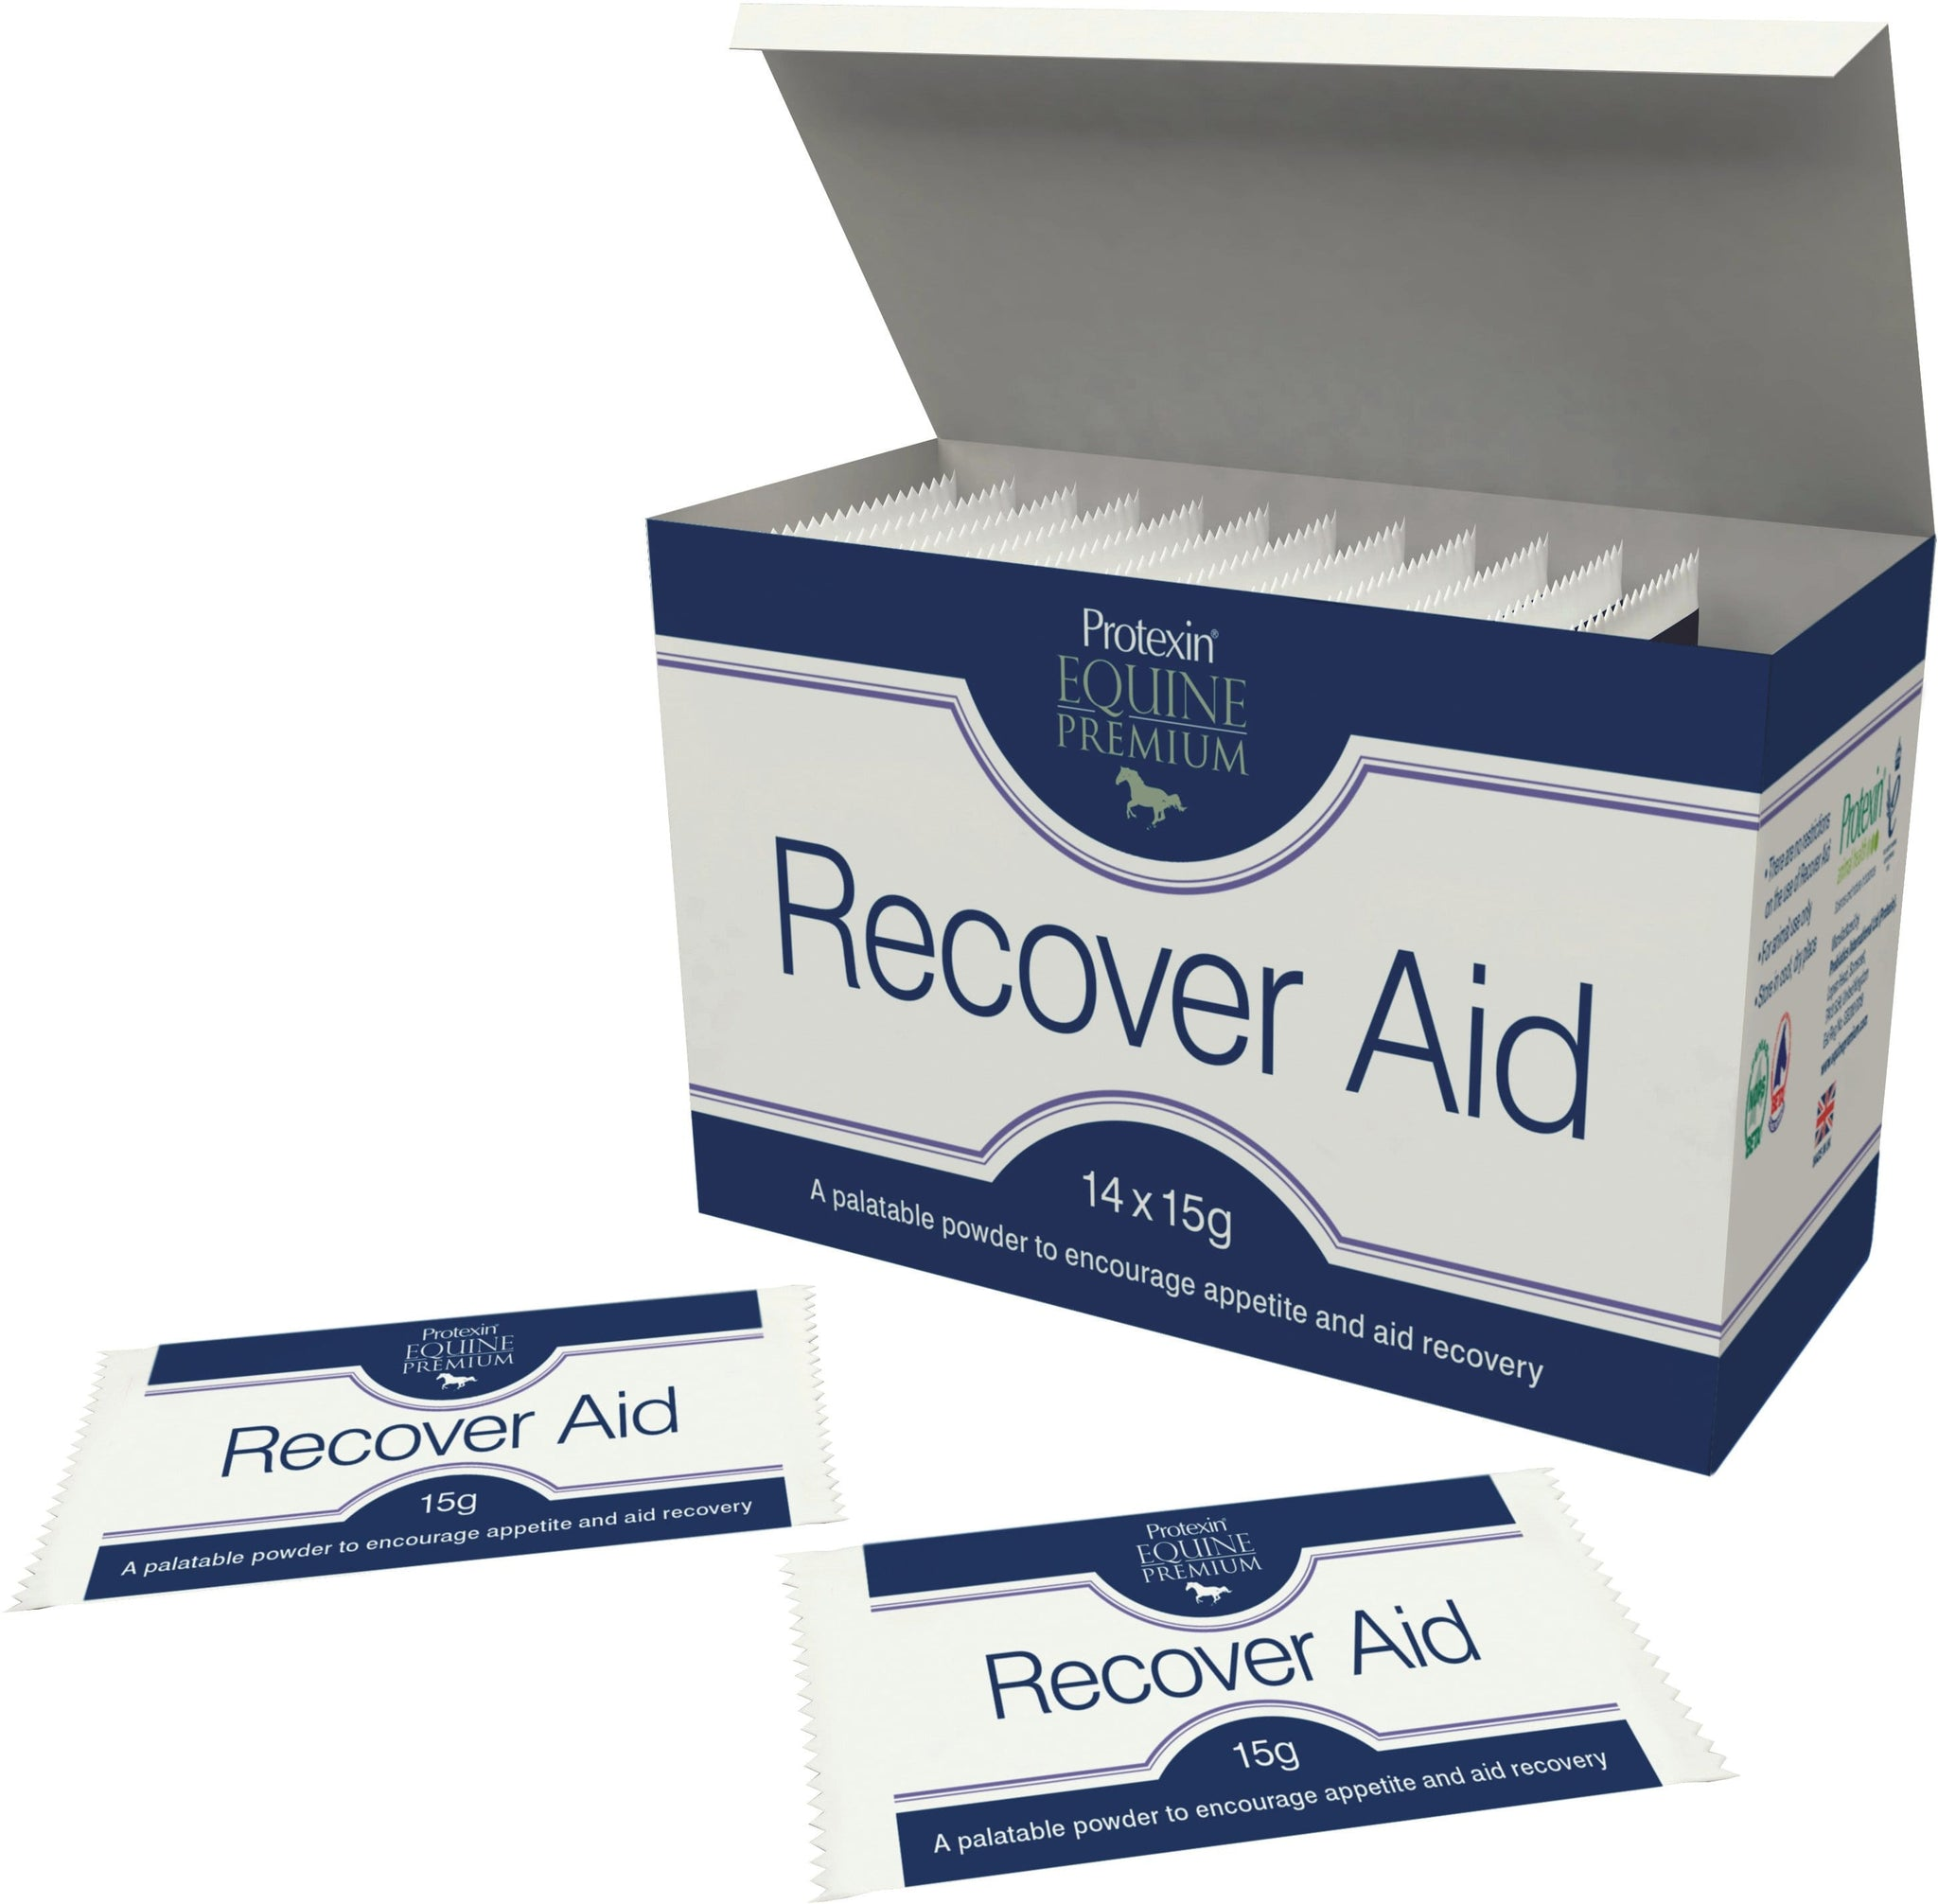 Protexin Recover Aid 7513